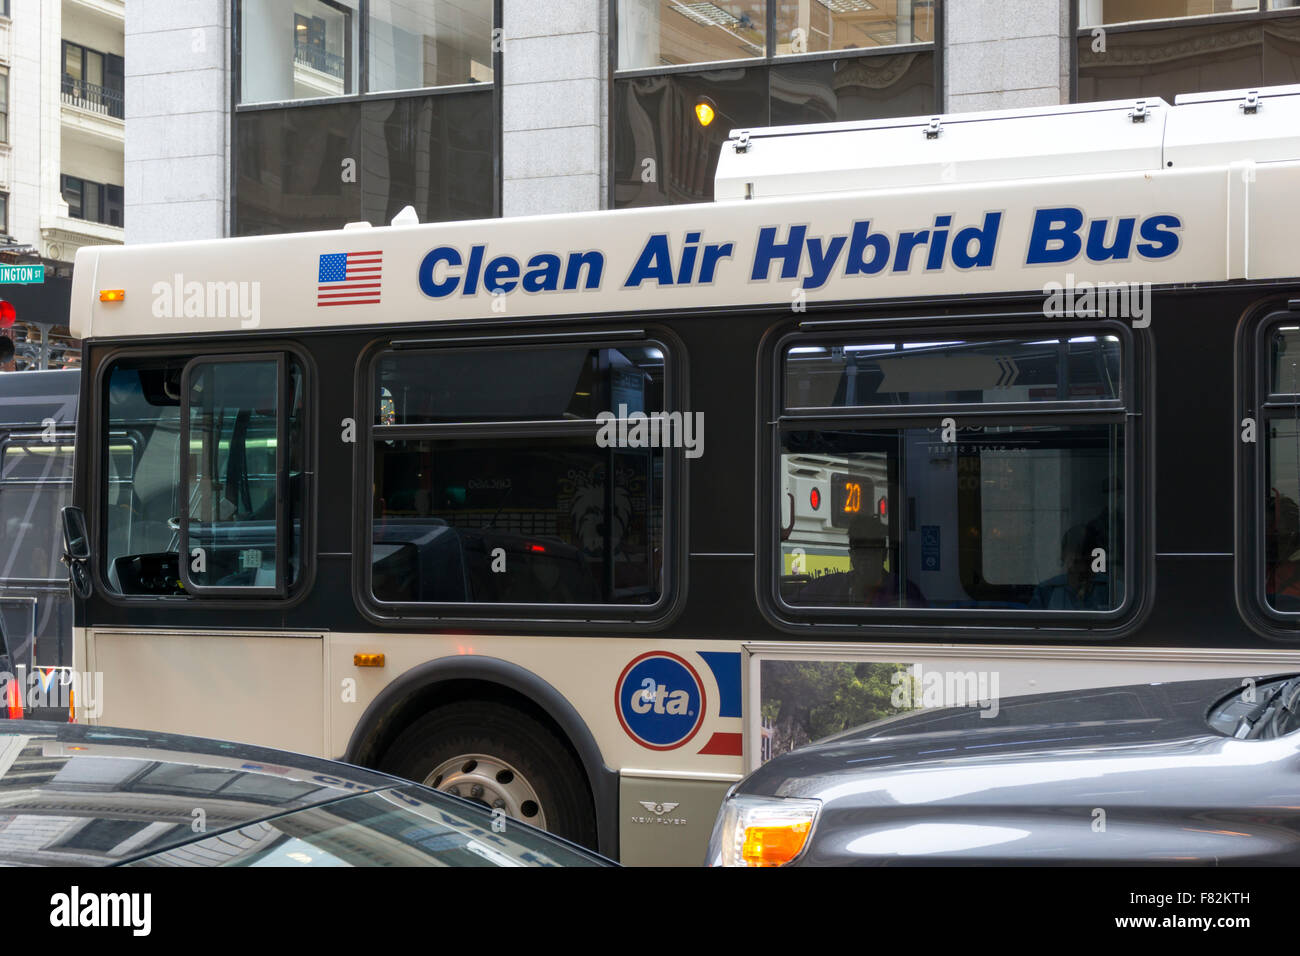 A Chicago Transit Authority Clean Air Hybrid Bus in traffic. - Stock Image